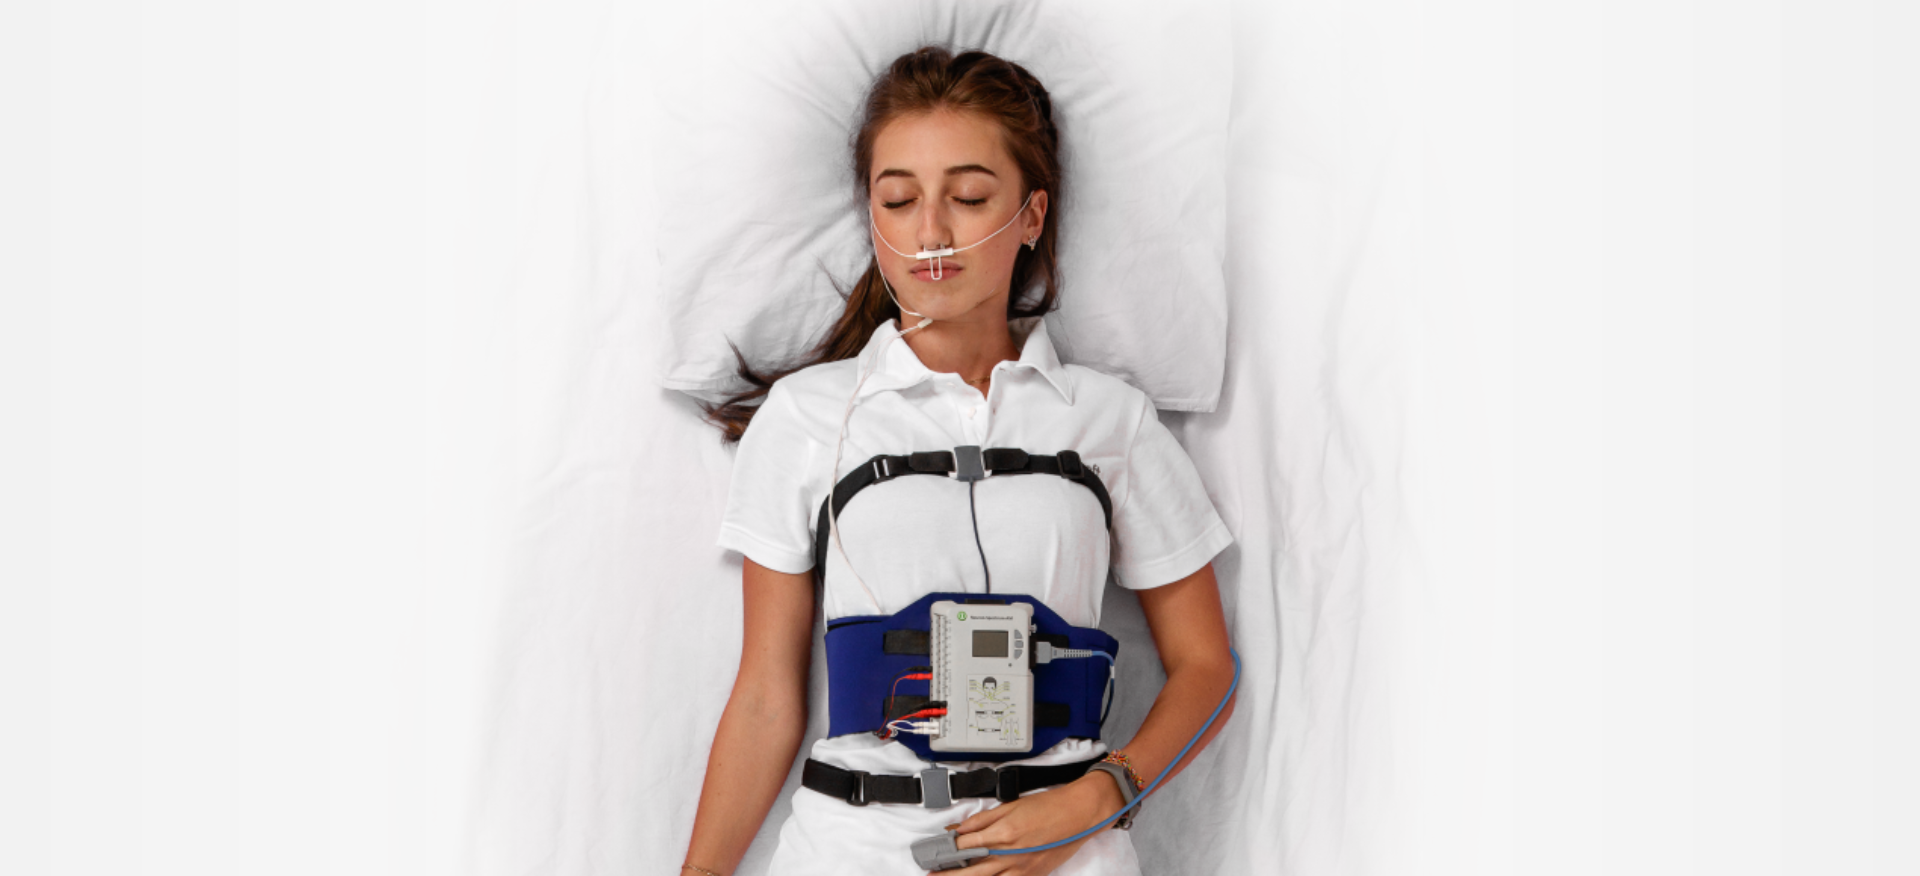 Cardiorespiratory monitor (type III sleep monitor)